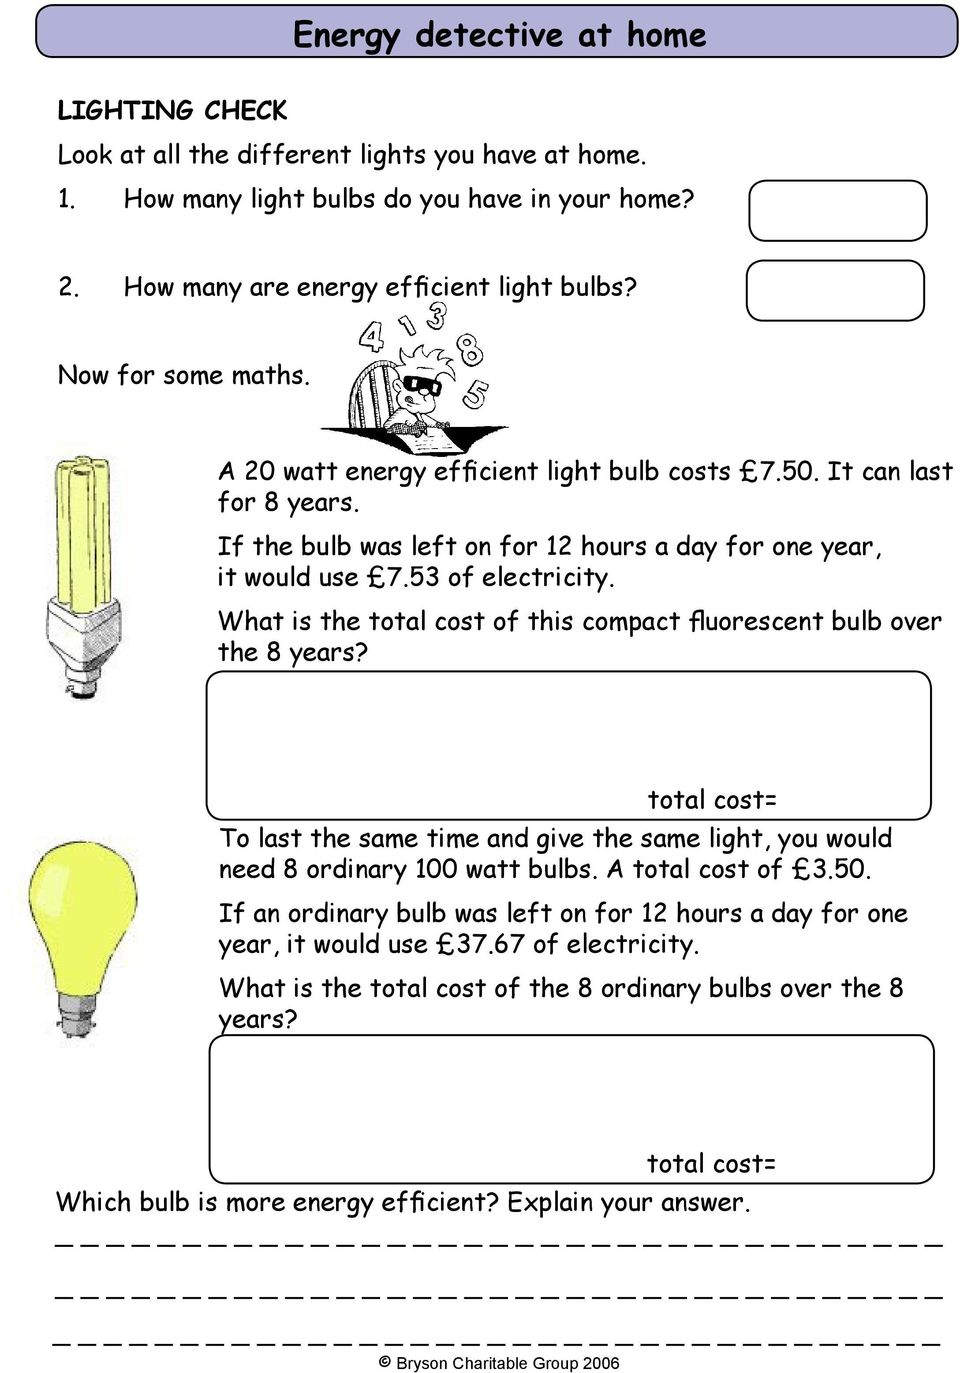 What is the total cost of this compact fluorescent bulb over the 8 years? total cost= To last the same time and give the same light, you would need 8 ordinary 100 watt bulbs. A total cost of 3.50.